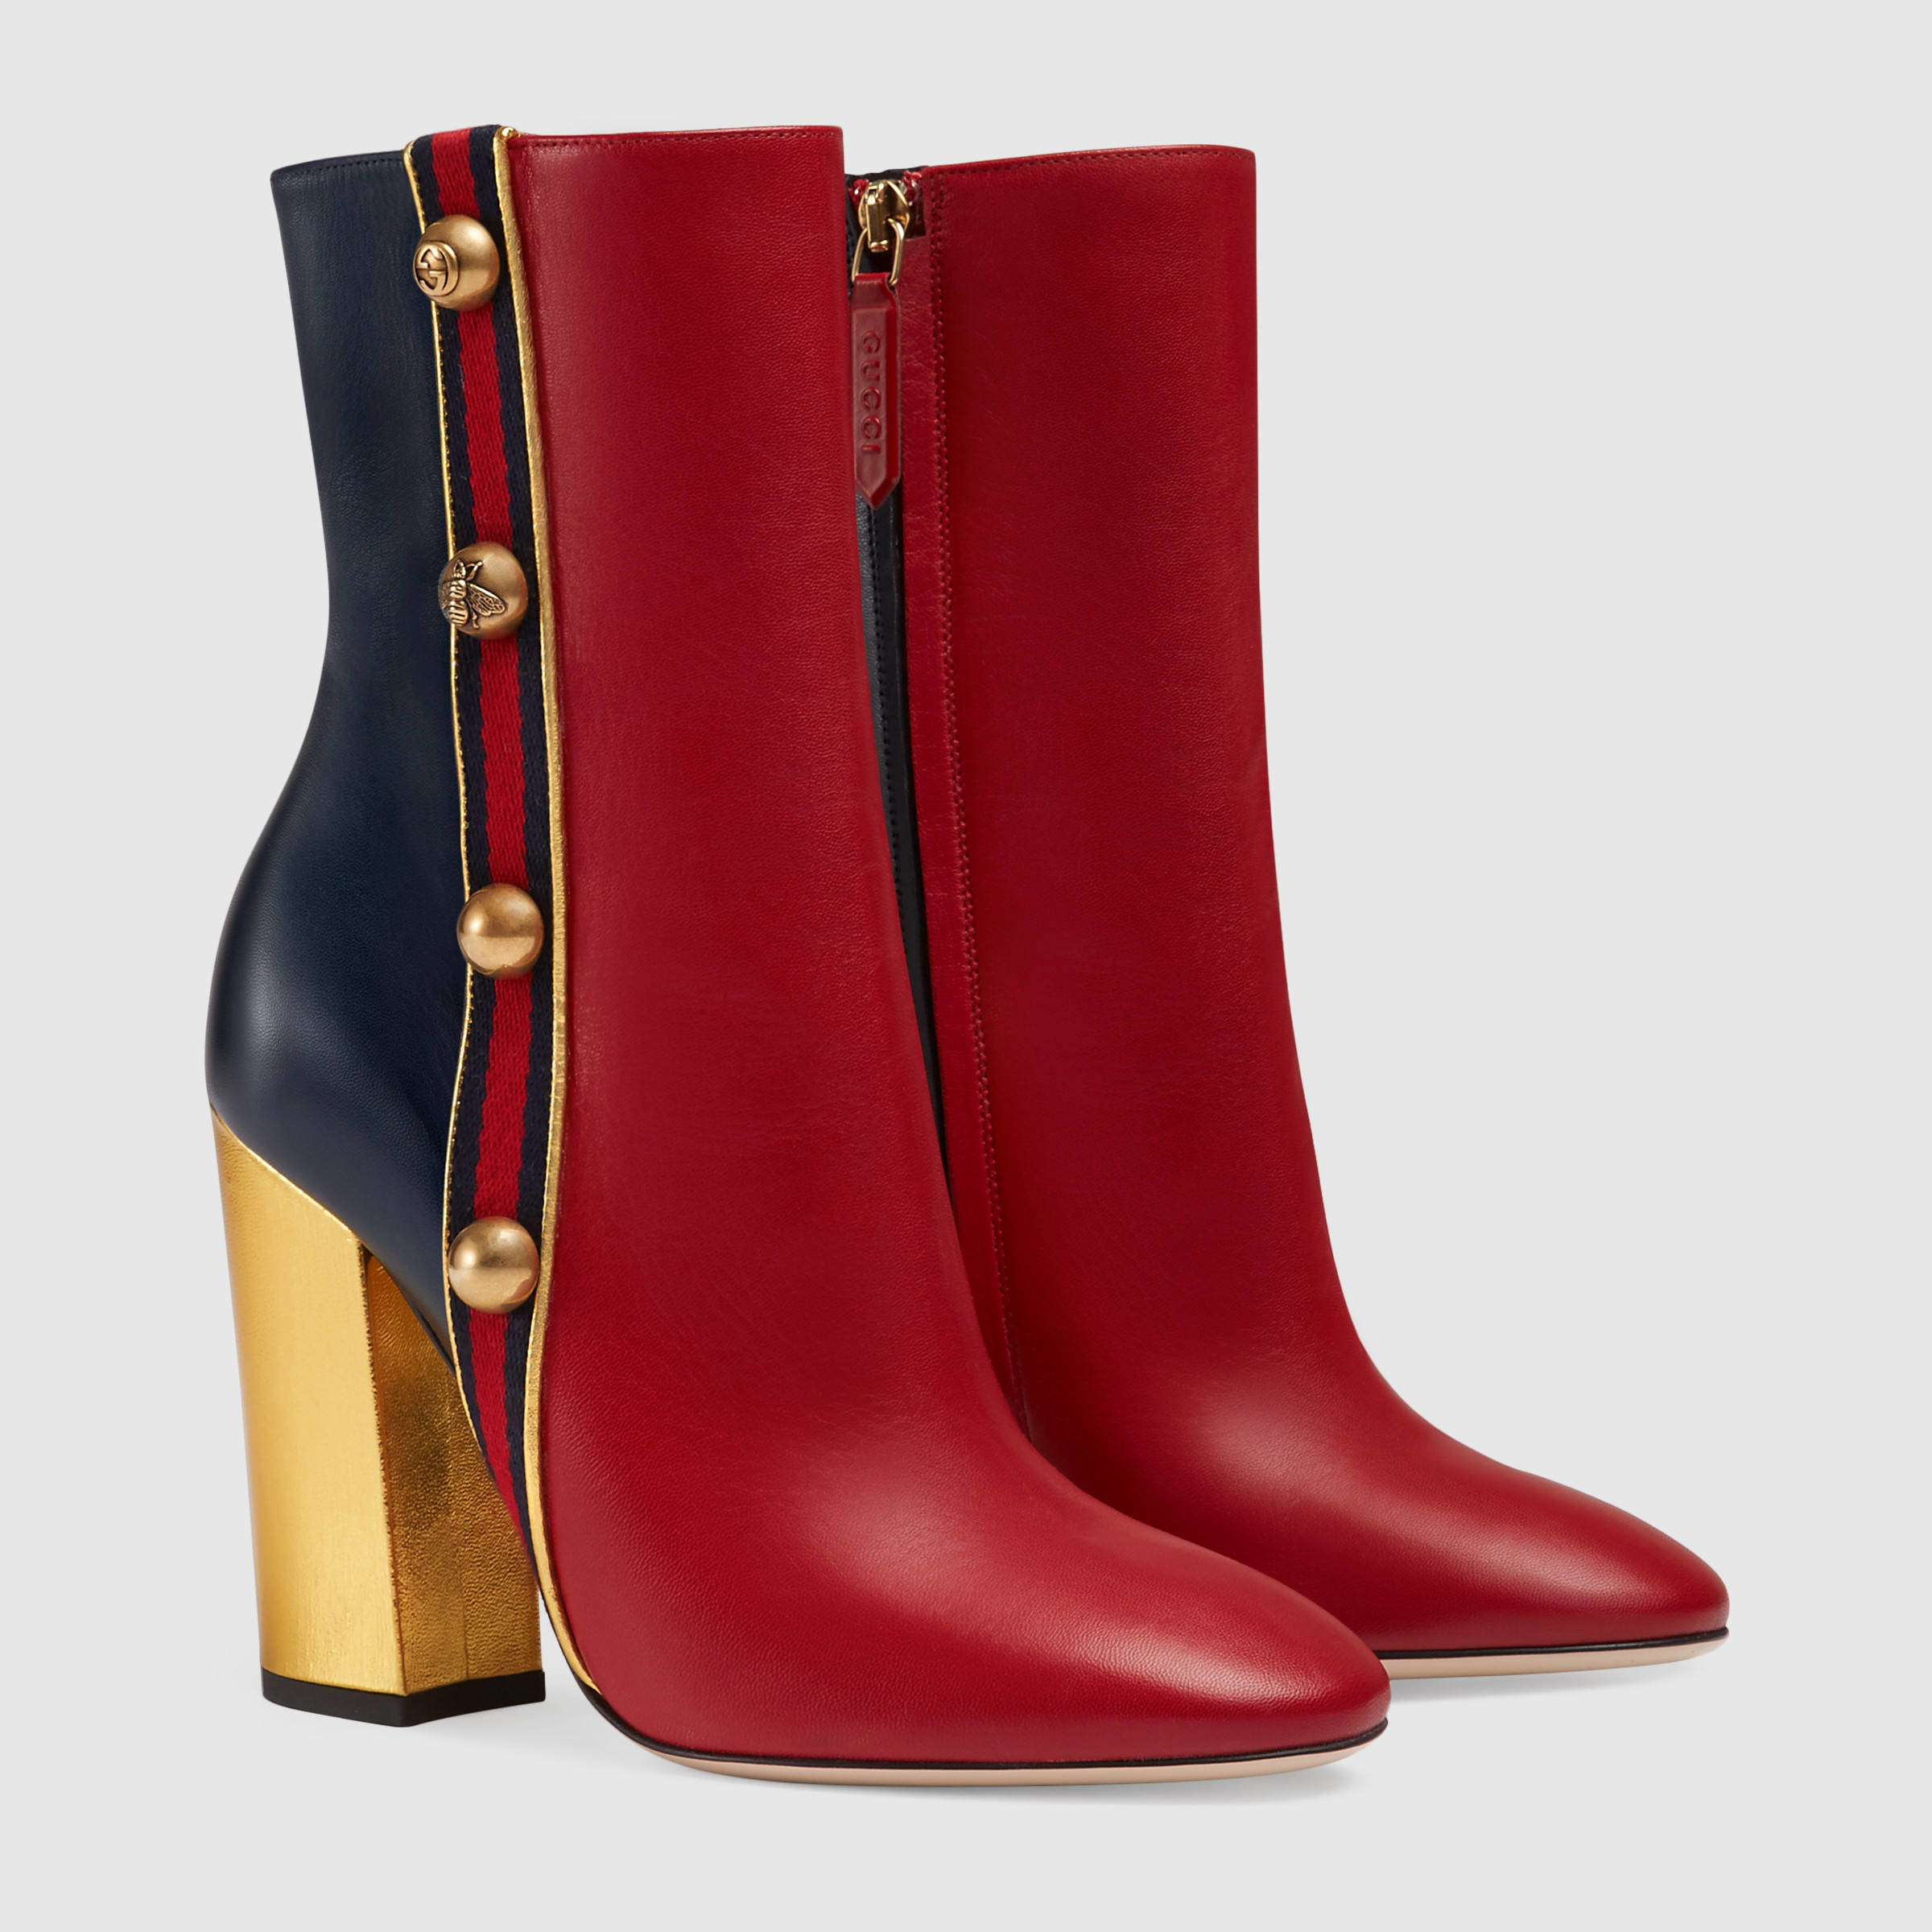 e59c4988078 Lyst - Gucci Carly Leather Ankle Boots in Red